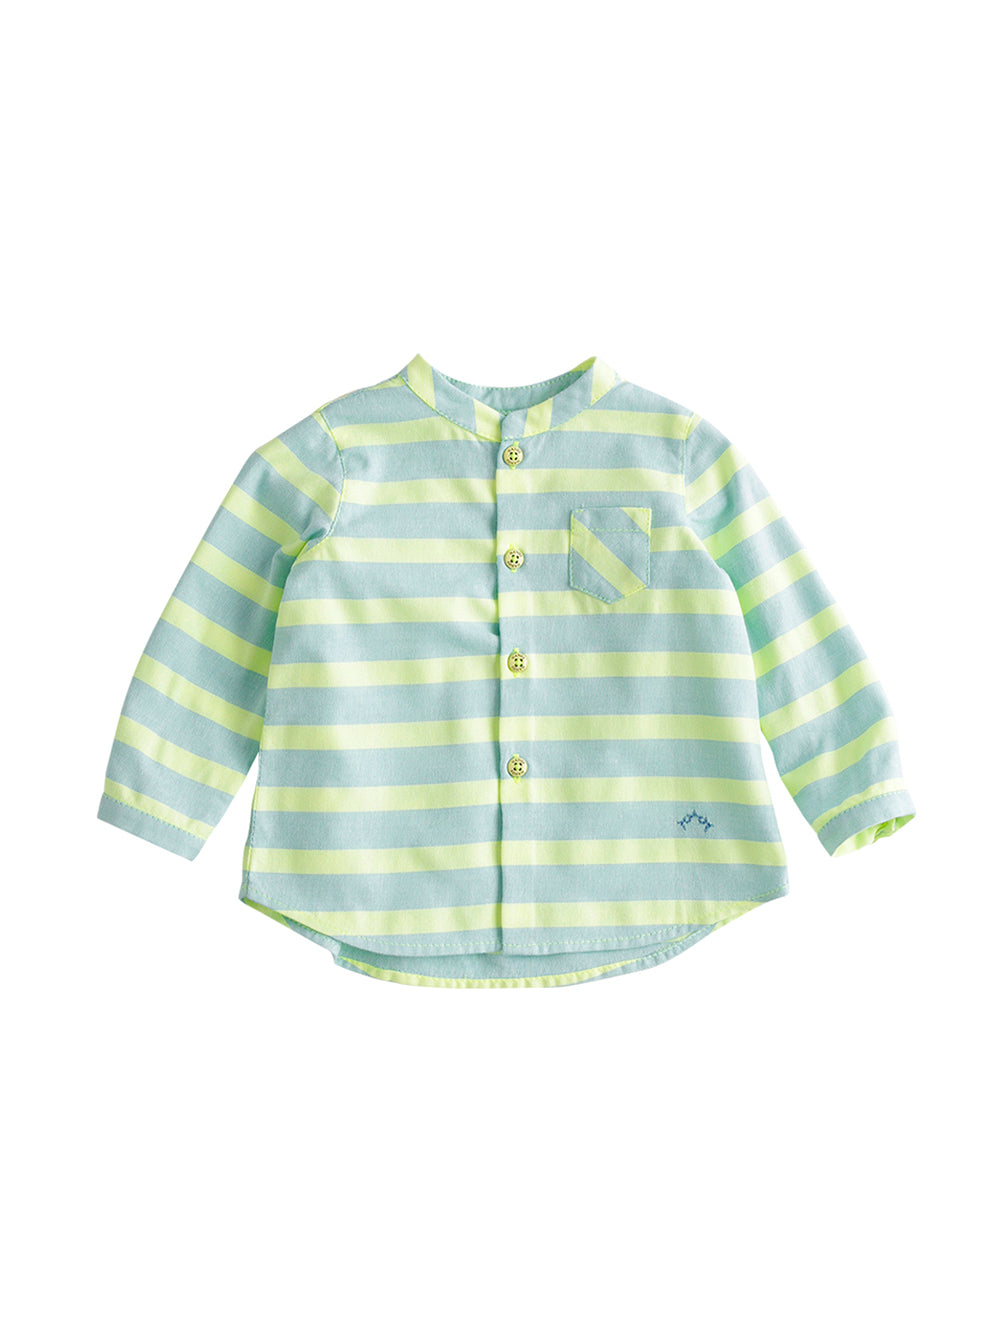 MInt Striped Baby Shirt